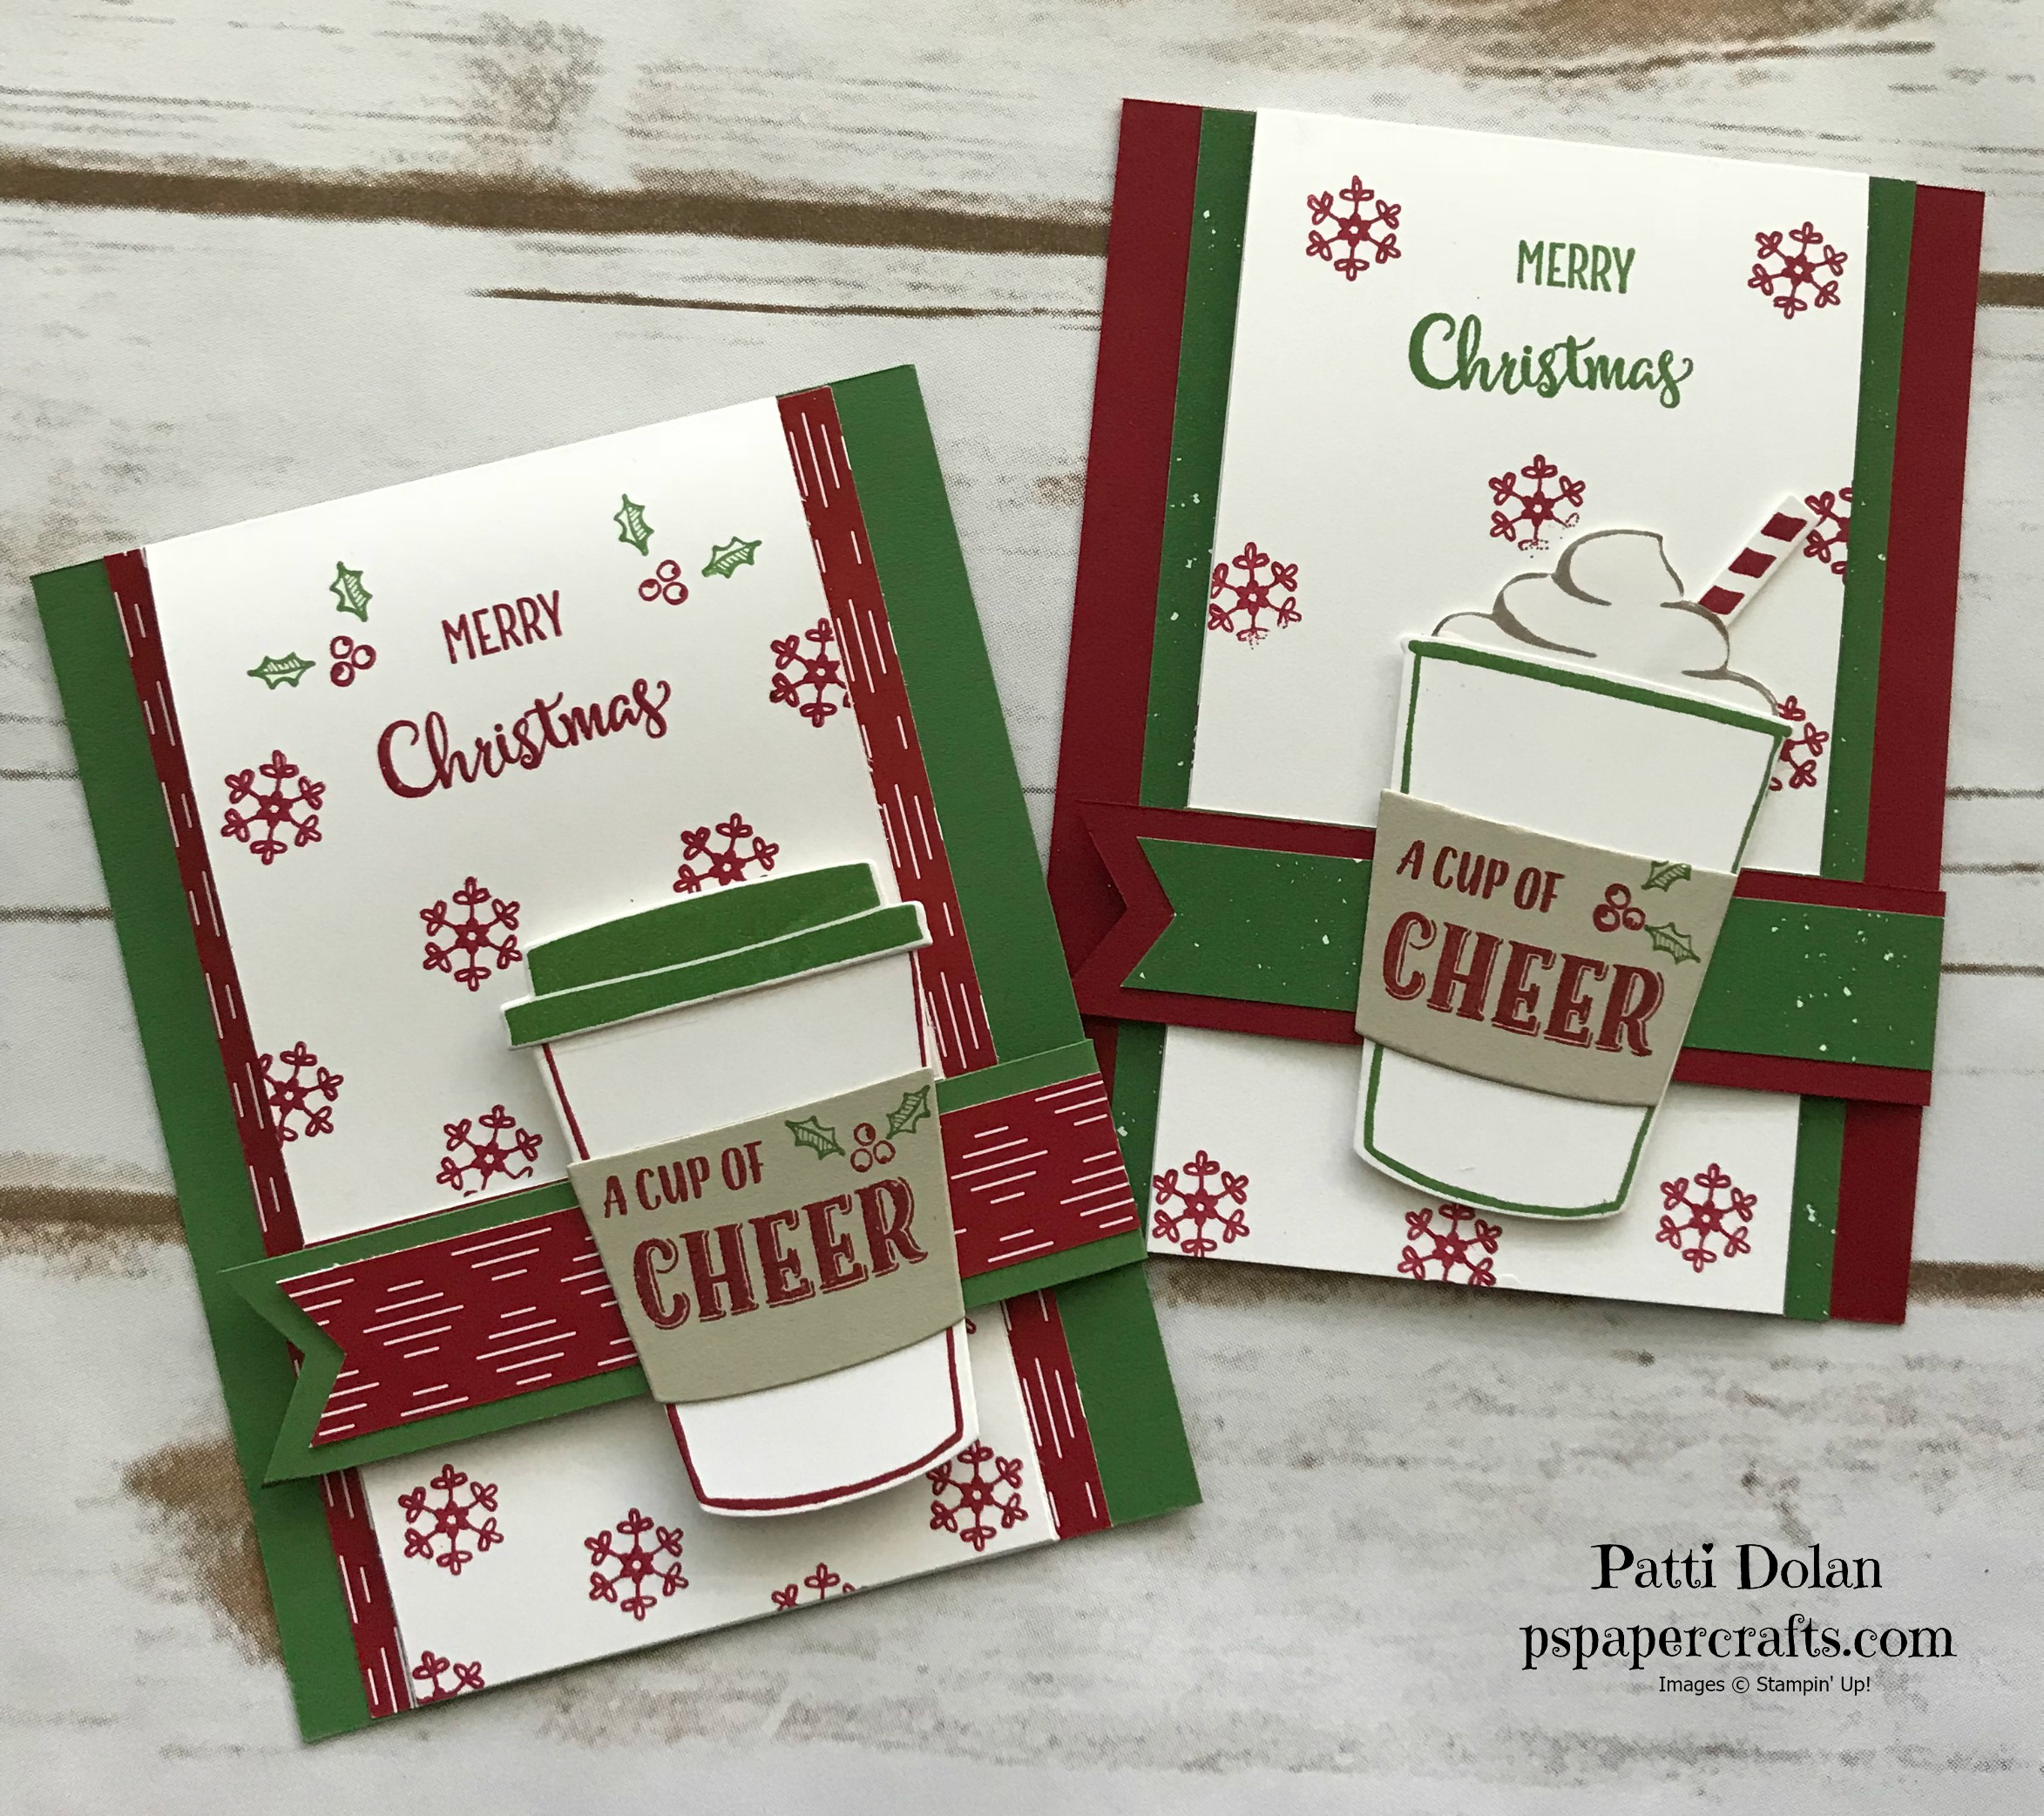 Merry Cafe Christmas Card with Gift Card Holder Both1.jpg